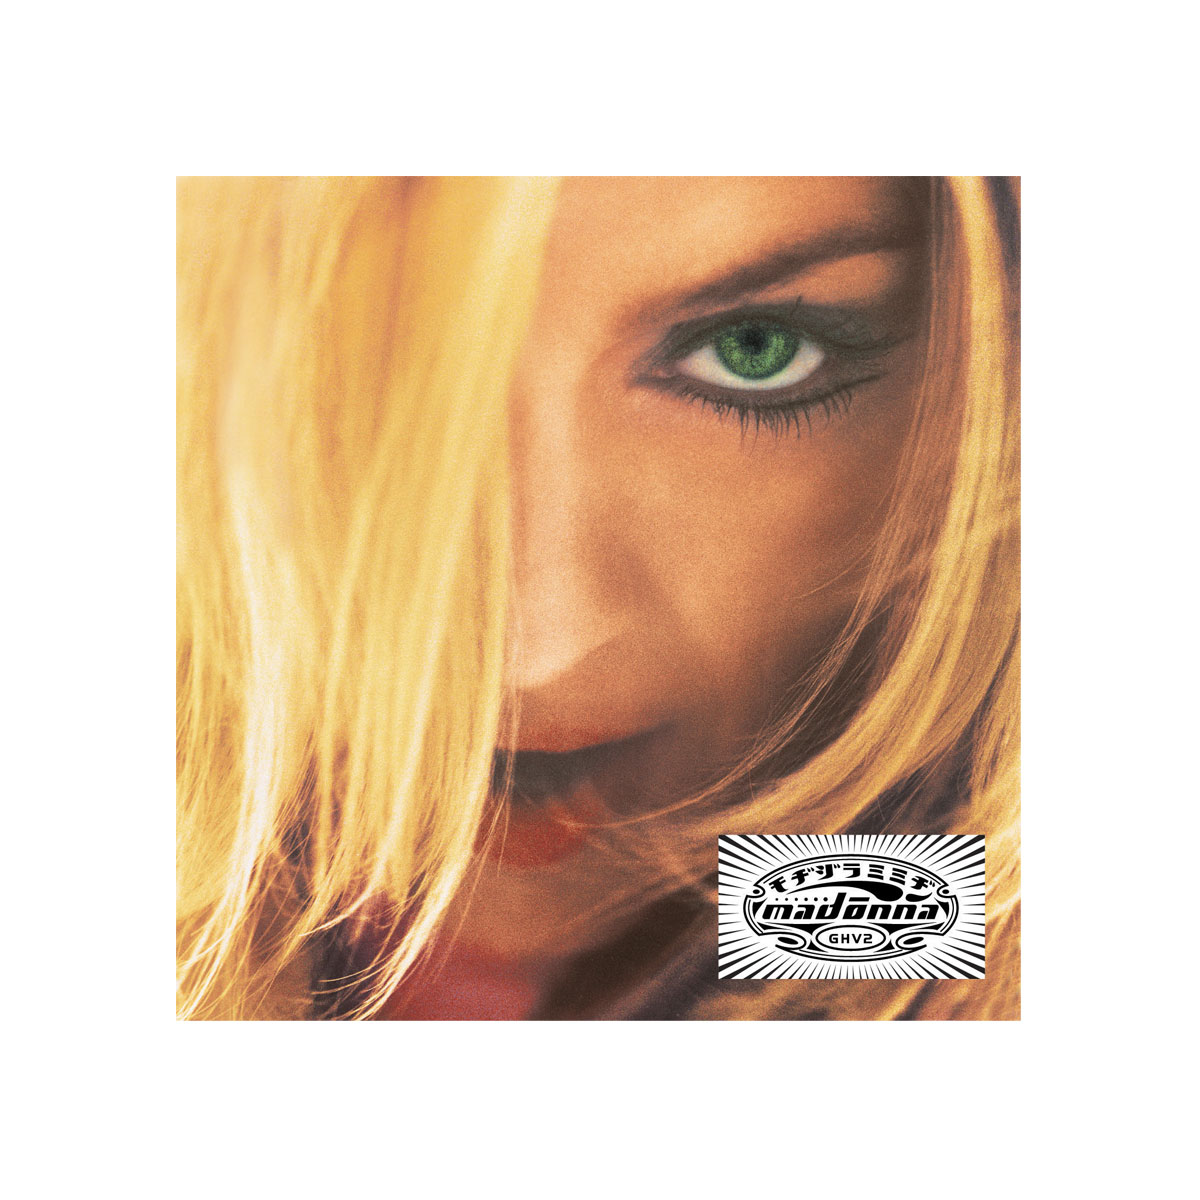 CD Madonna Greatest Hits Vol. 2